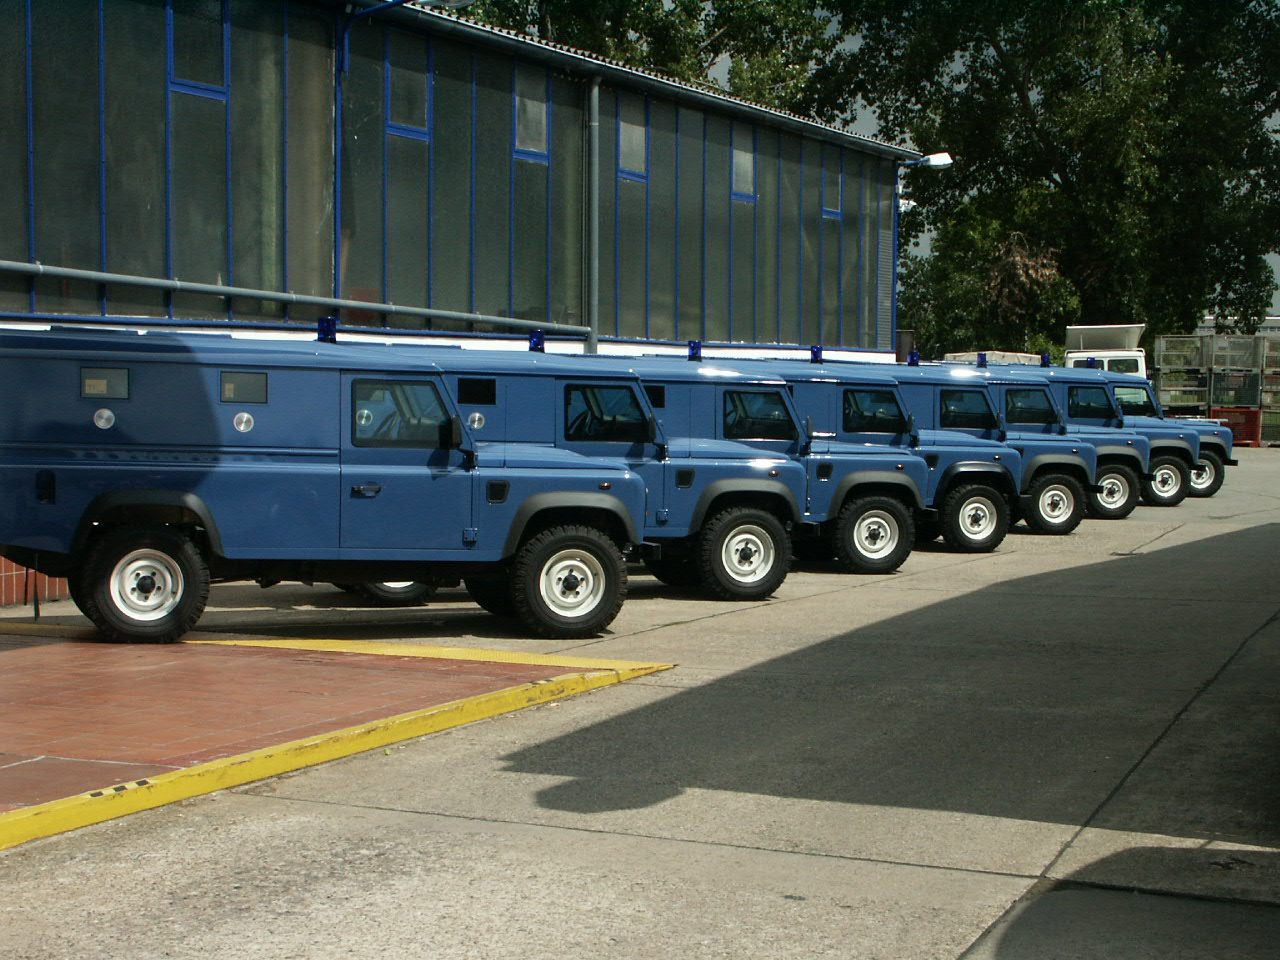 26299 - Land-Rover police vehicles Europe